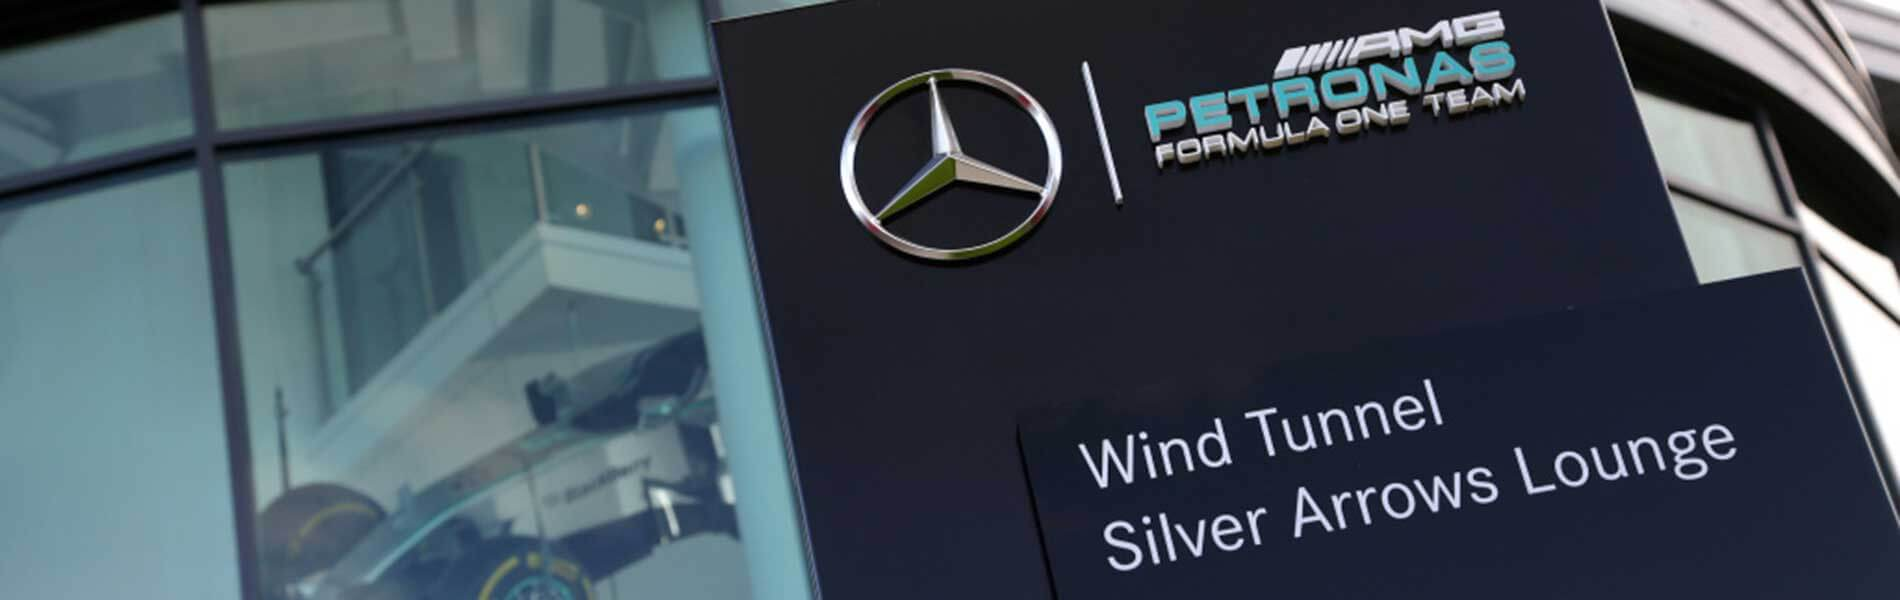 Formula 1 in Silverstone: A home race for Mercedes-AMG Petronas Motorsport